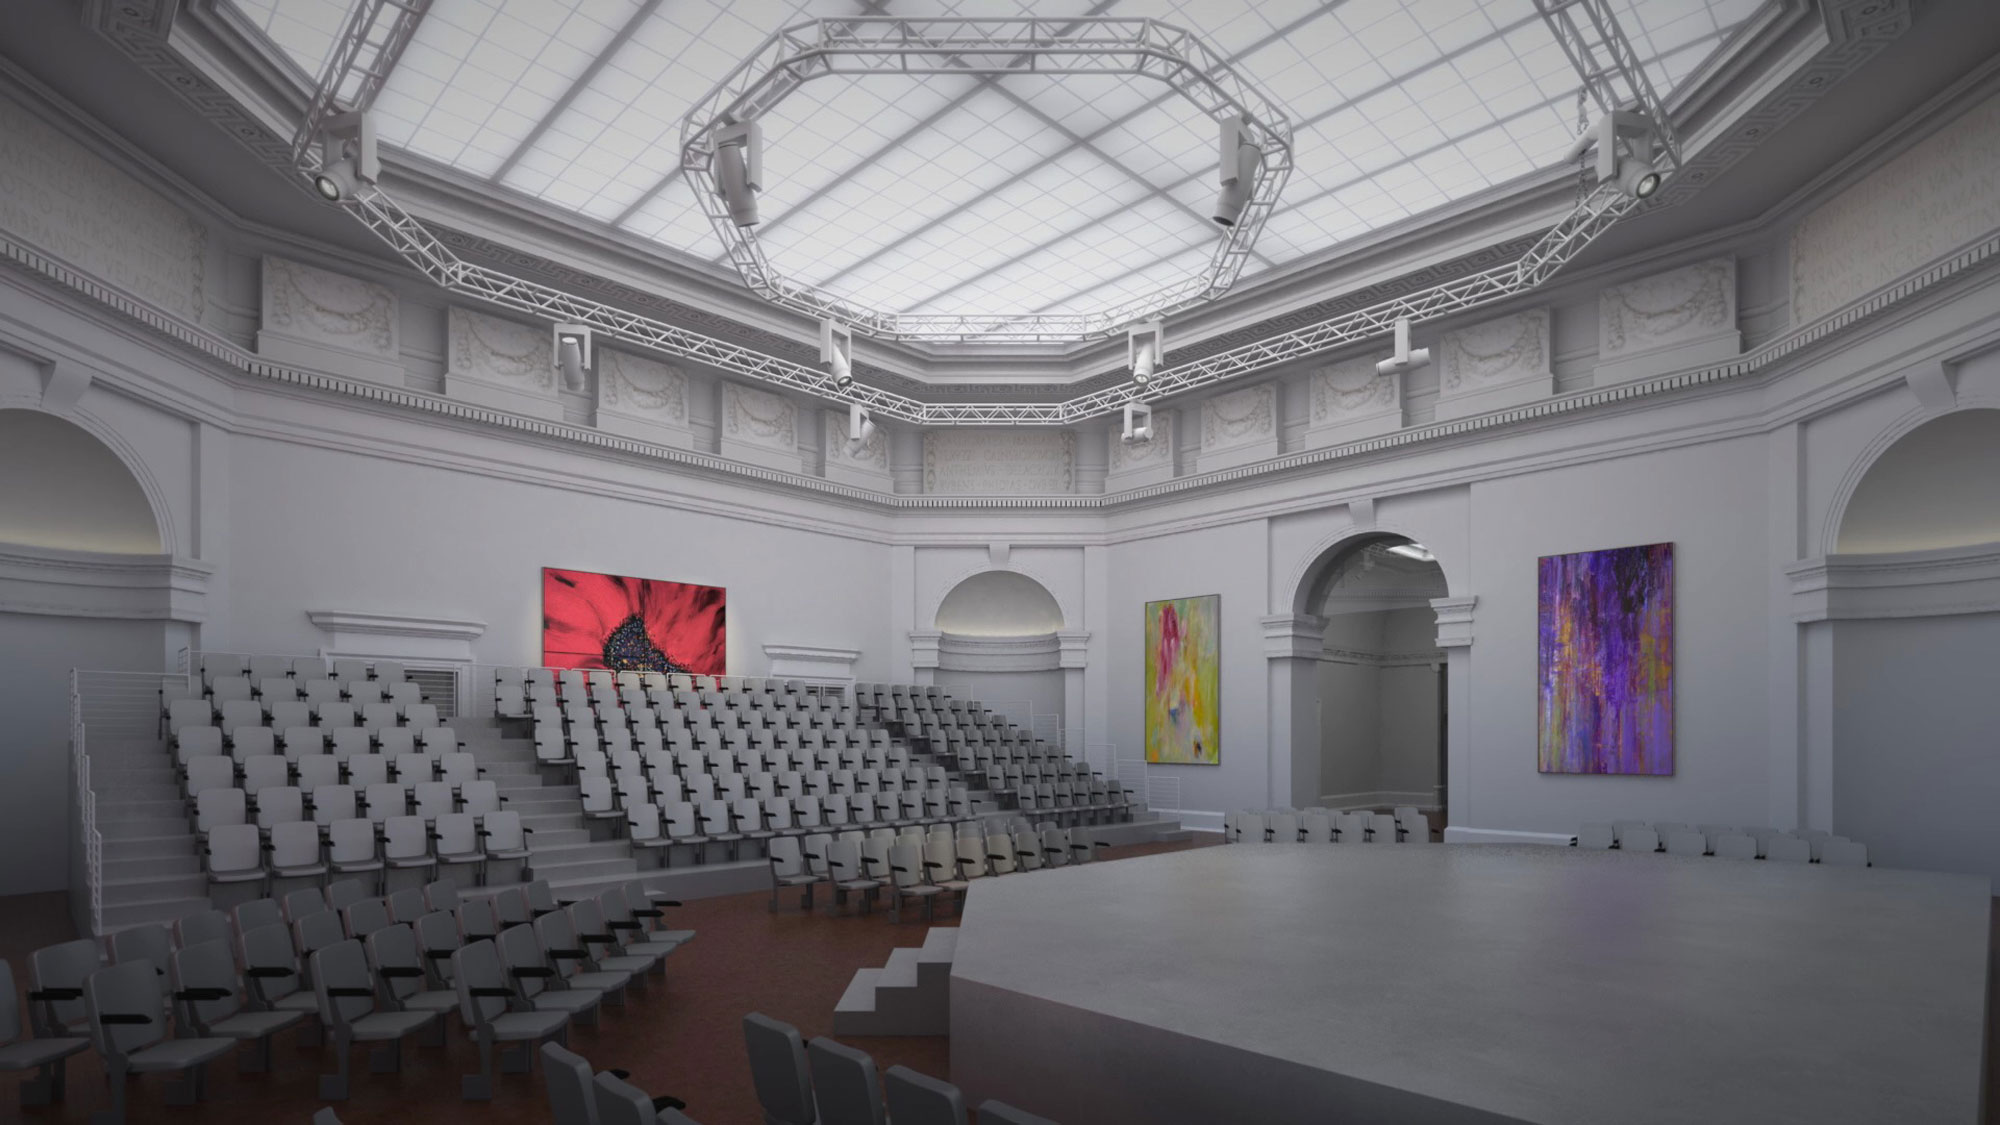 Taube Atrium Theater